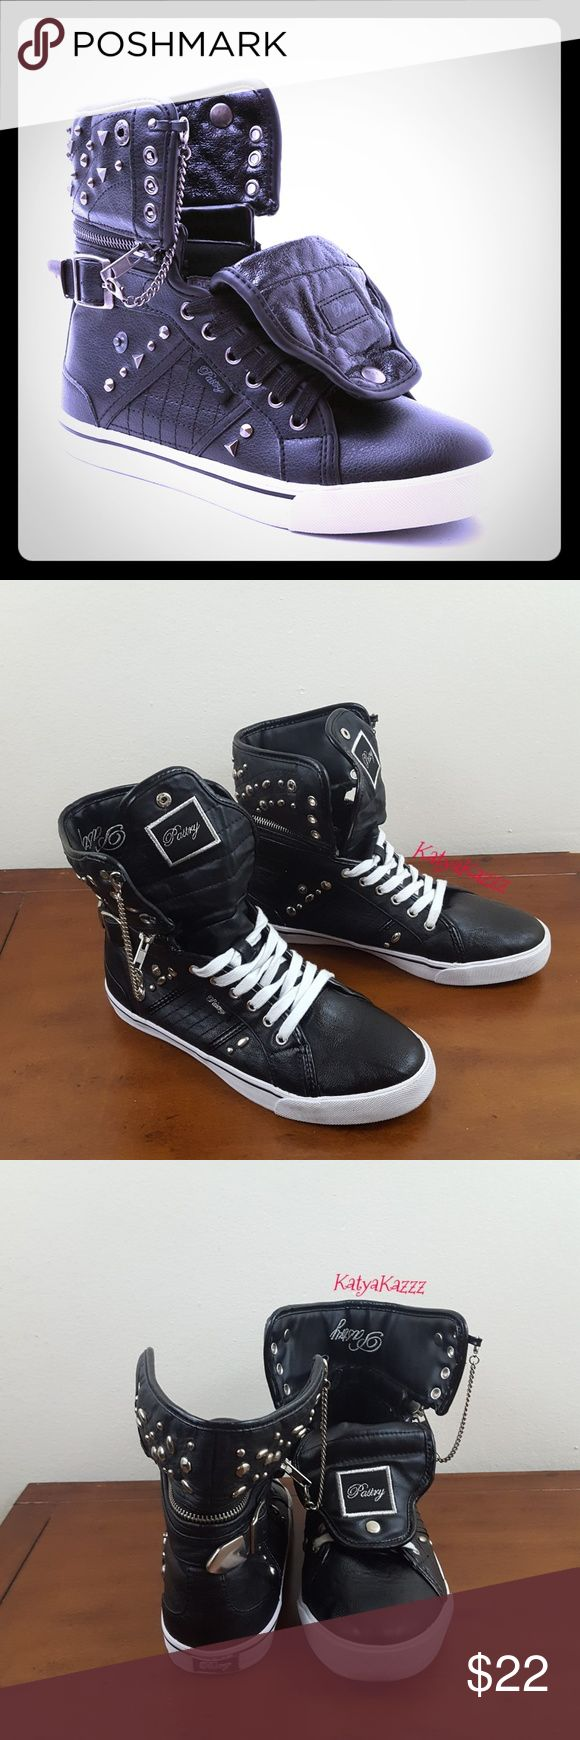 ♥️PASTRY♥️SNEAKERS♥️ Very comfortable pair of PASTRY dancing sneakers. They can be worn as high tops as shown on the pics. Look great with skinny jeans... gently loved and taken care of. Normal signs of wear♥️ Size 7.5 Pastry Shoes Sneakers